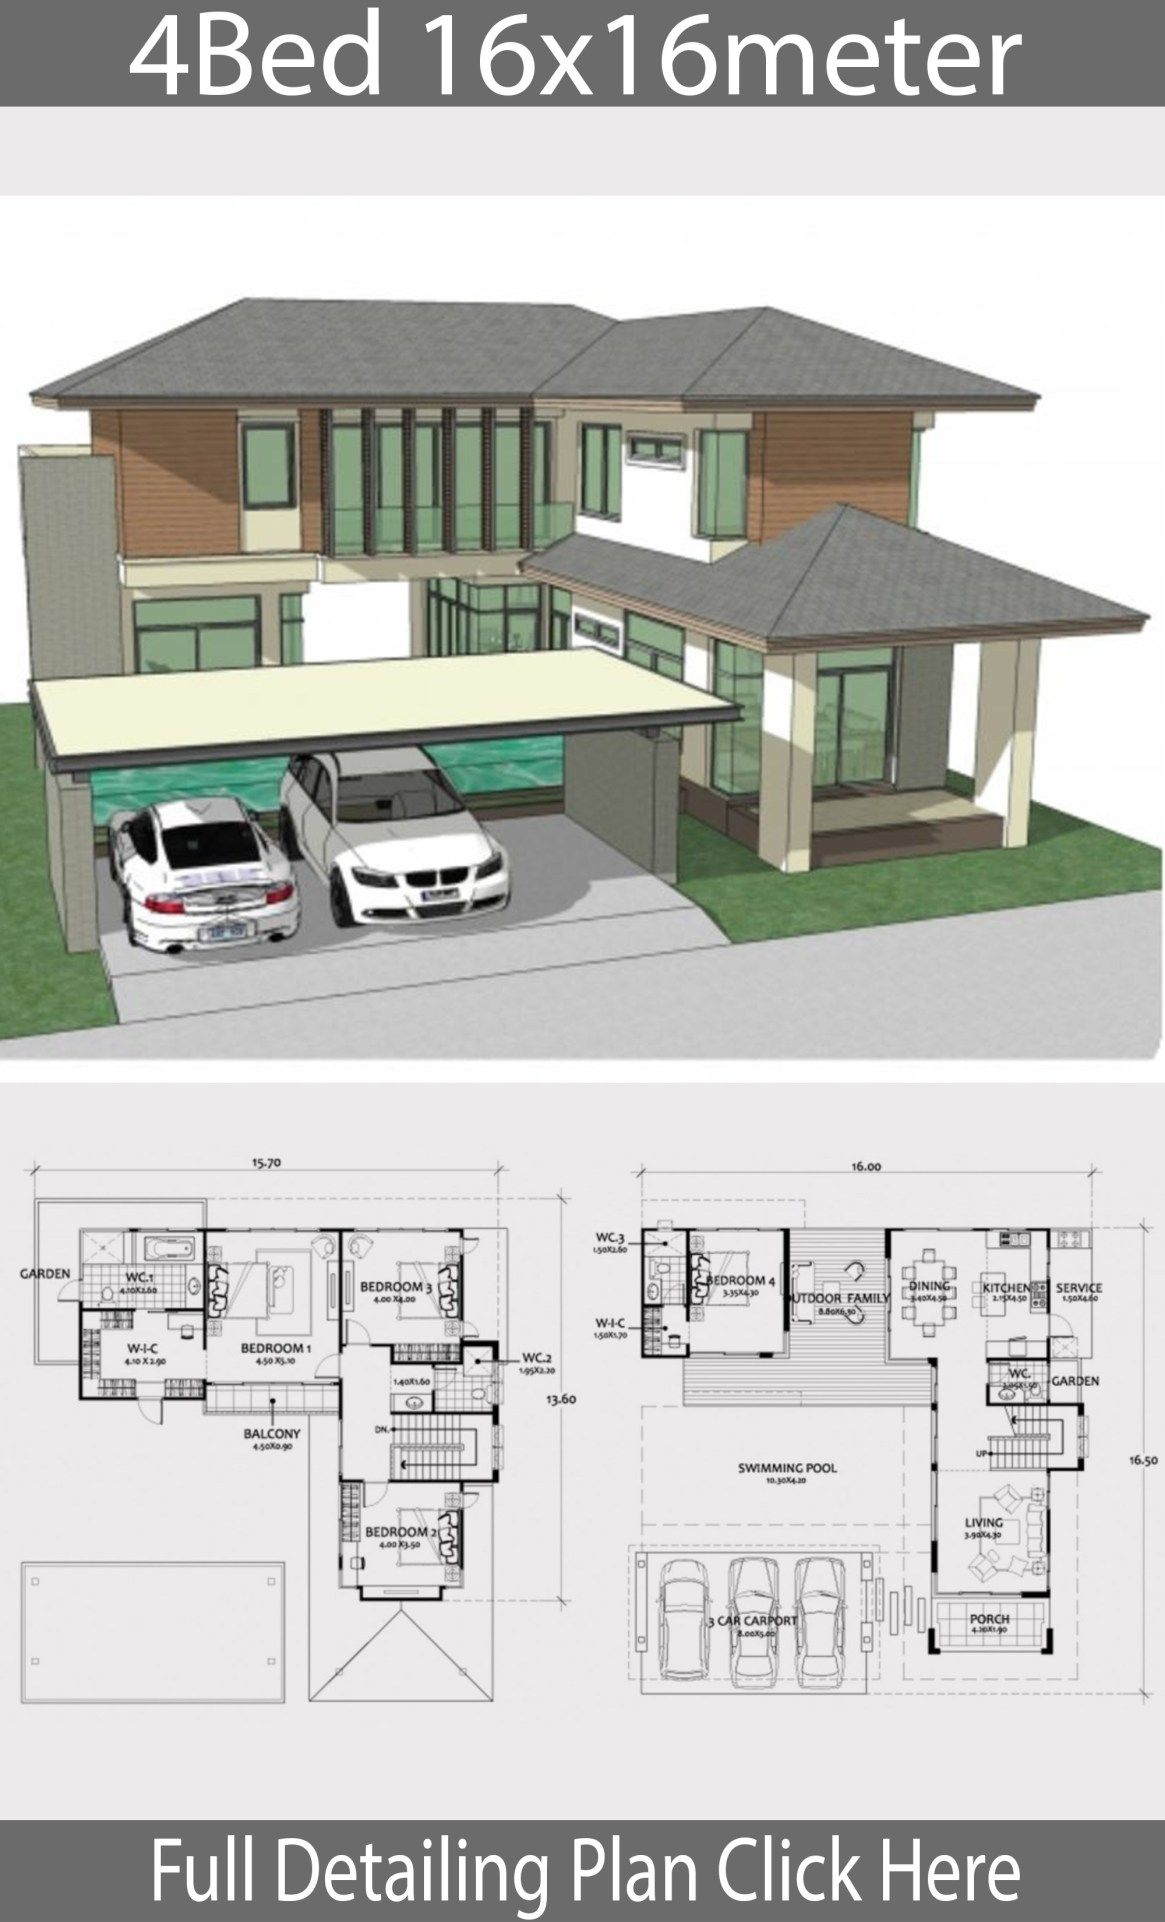 Home Design Plan 16x16m With 4 Bedrooms Home Design With Plansearch Town House Floor Plan Bungalow House Design Architectural House Plans